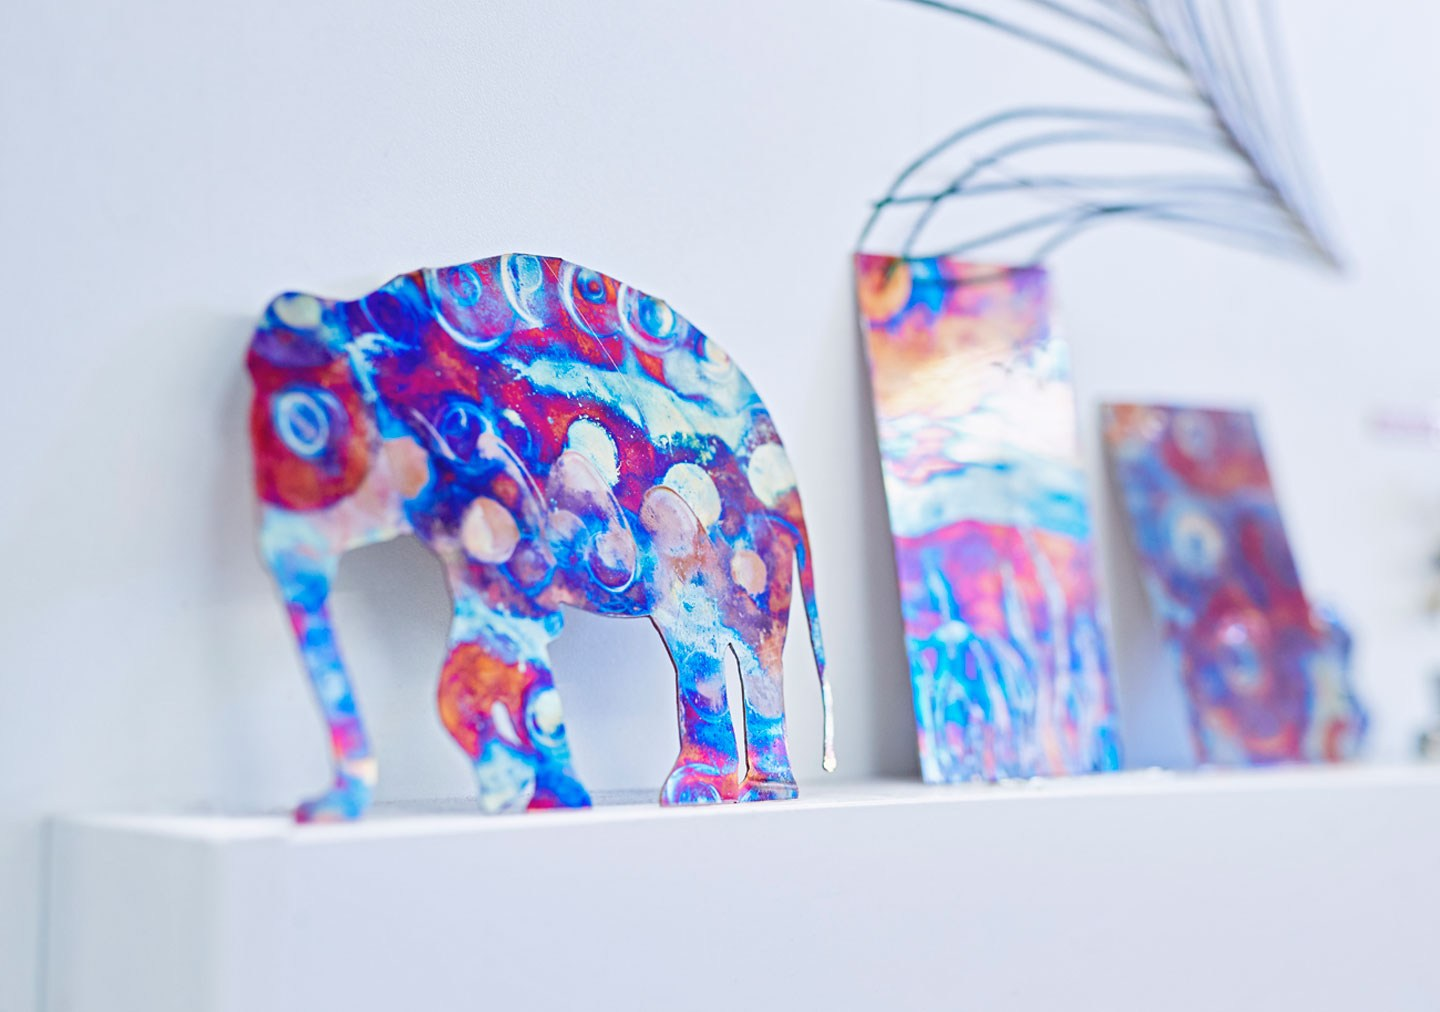 3 D Design and Creative Crafts artwork metal colourful elephant